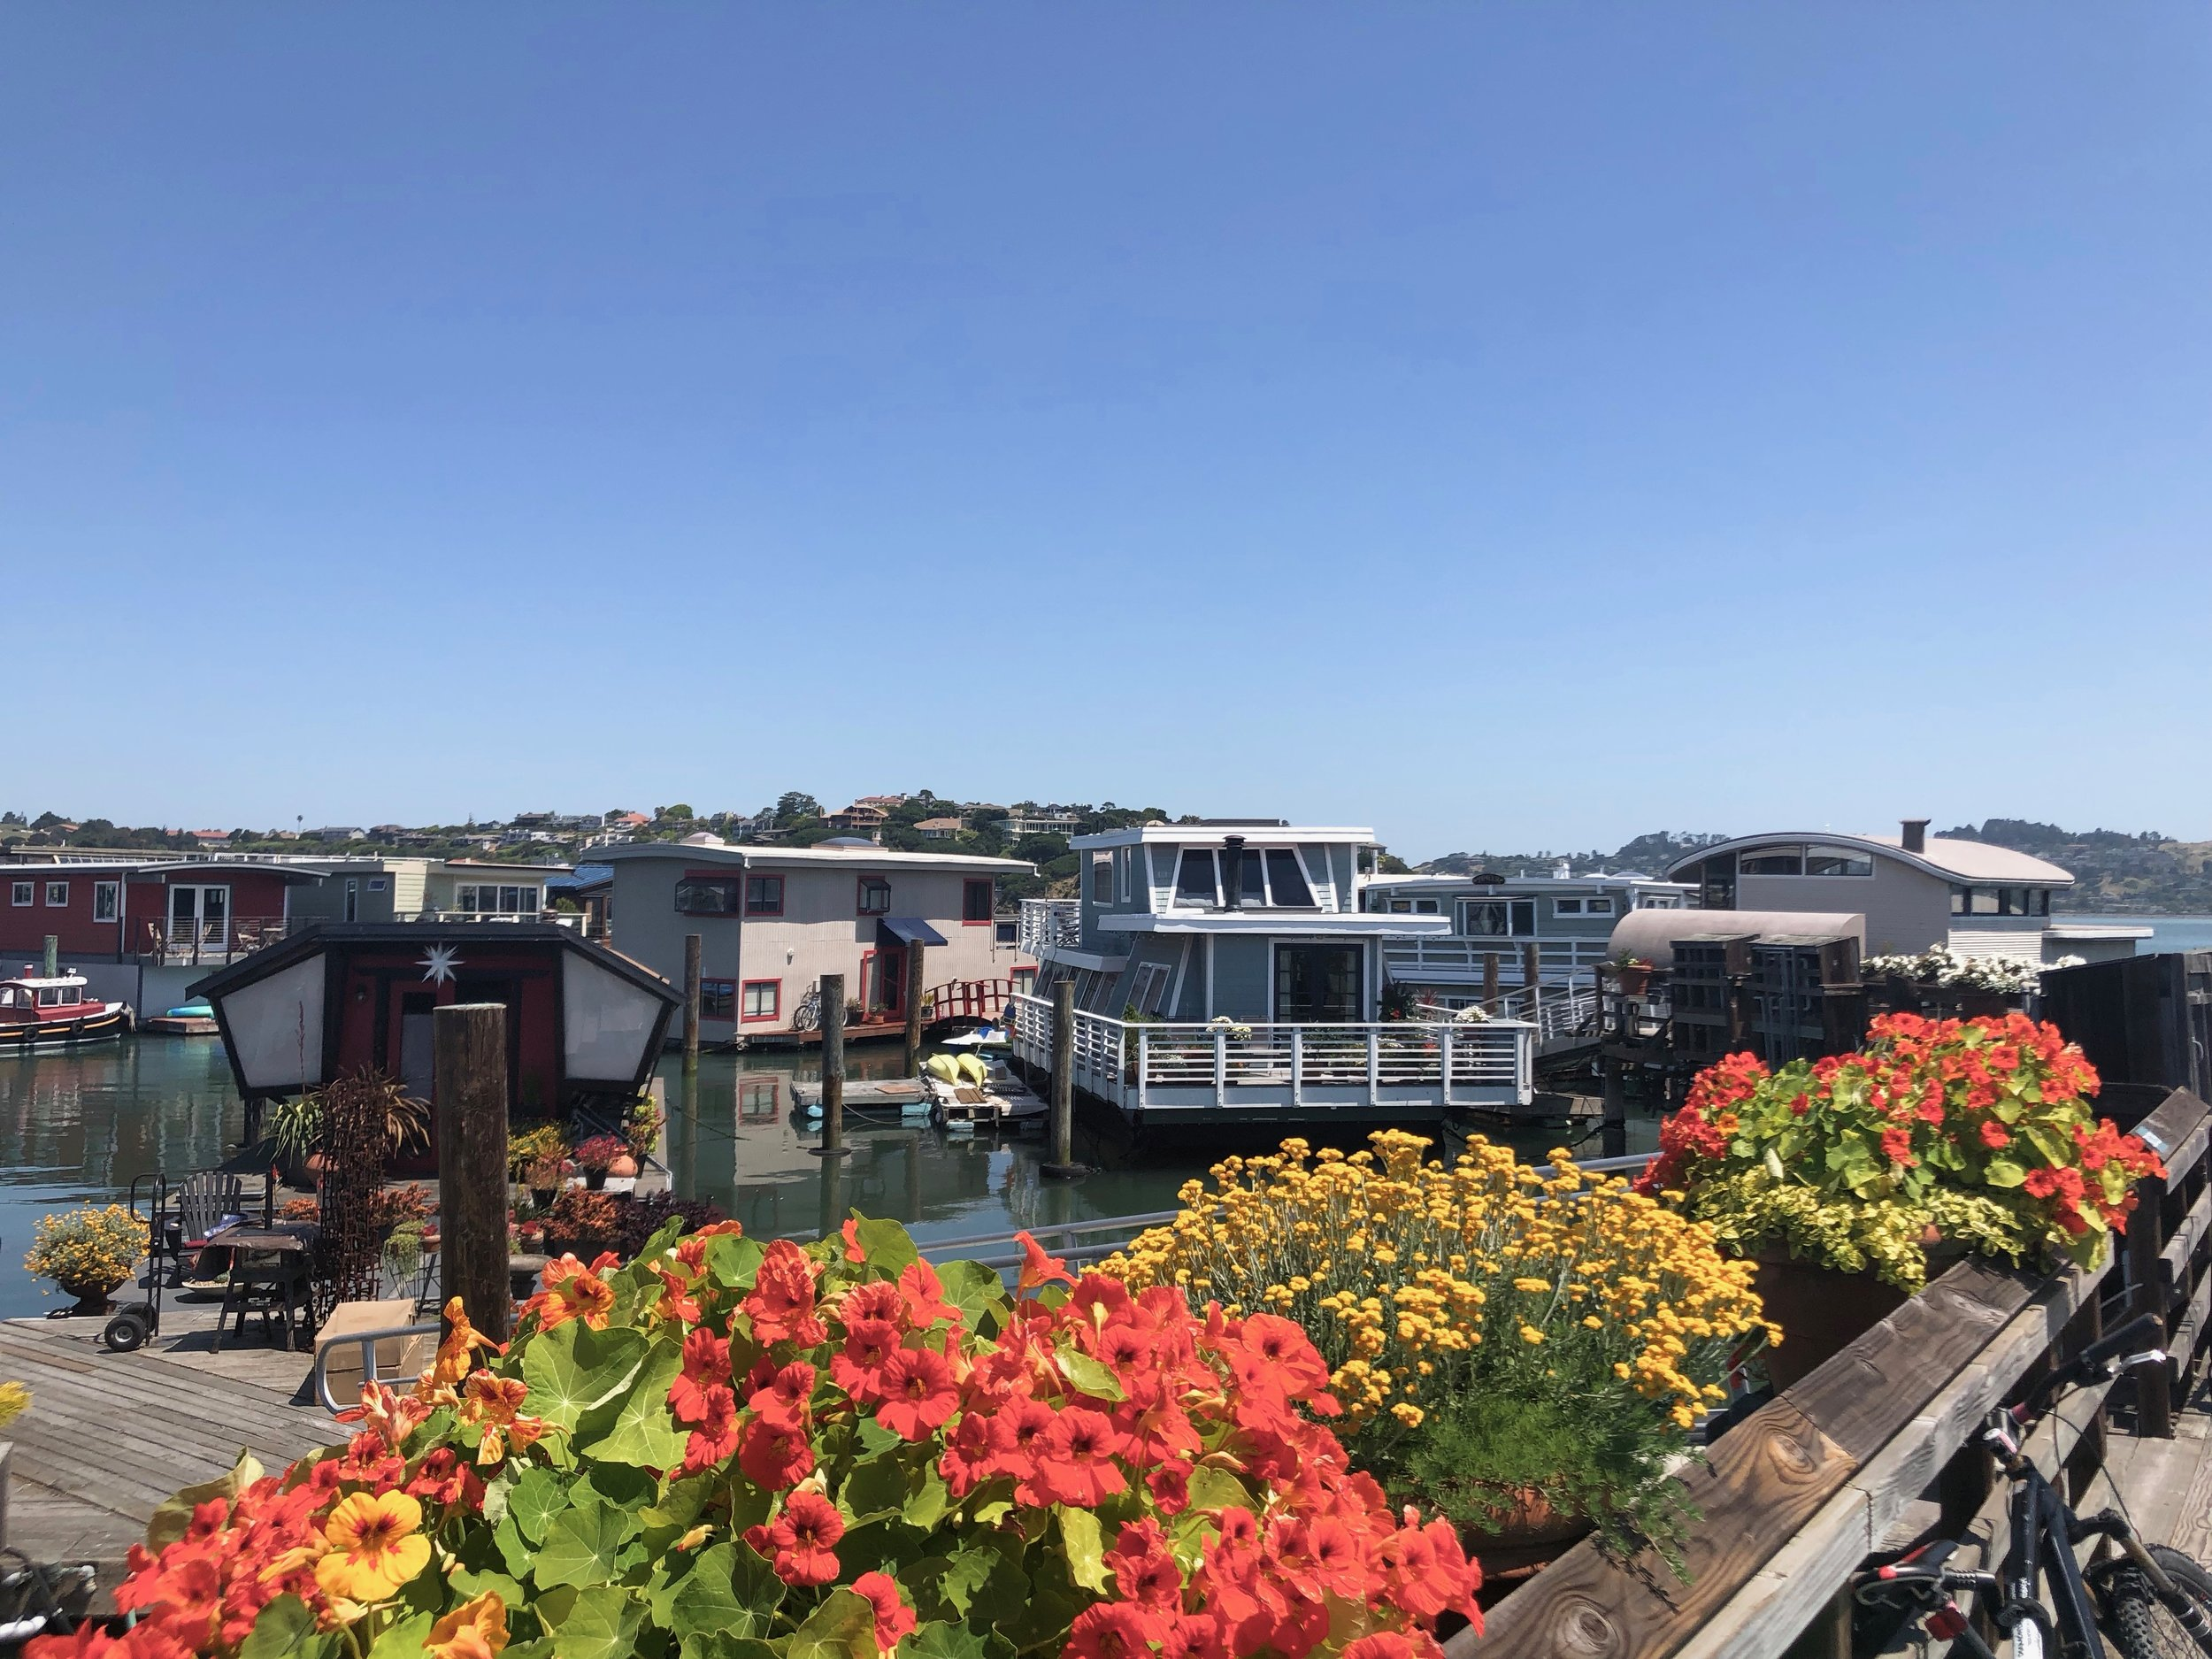 A slice of life in the floating homes community in Sausalito.